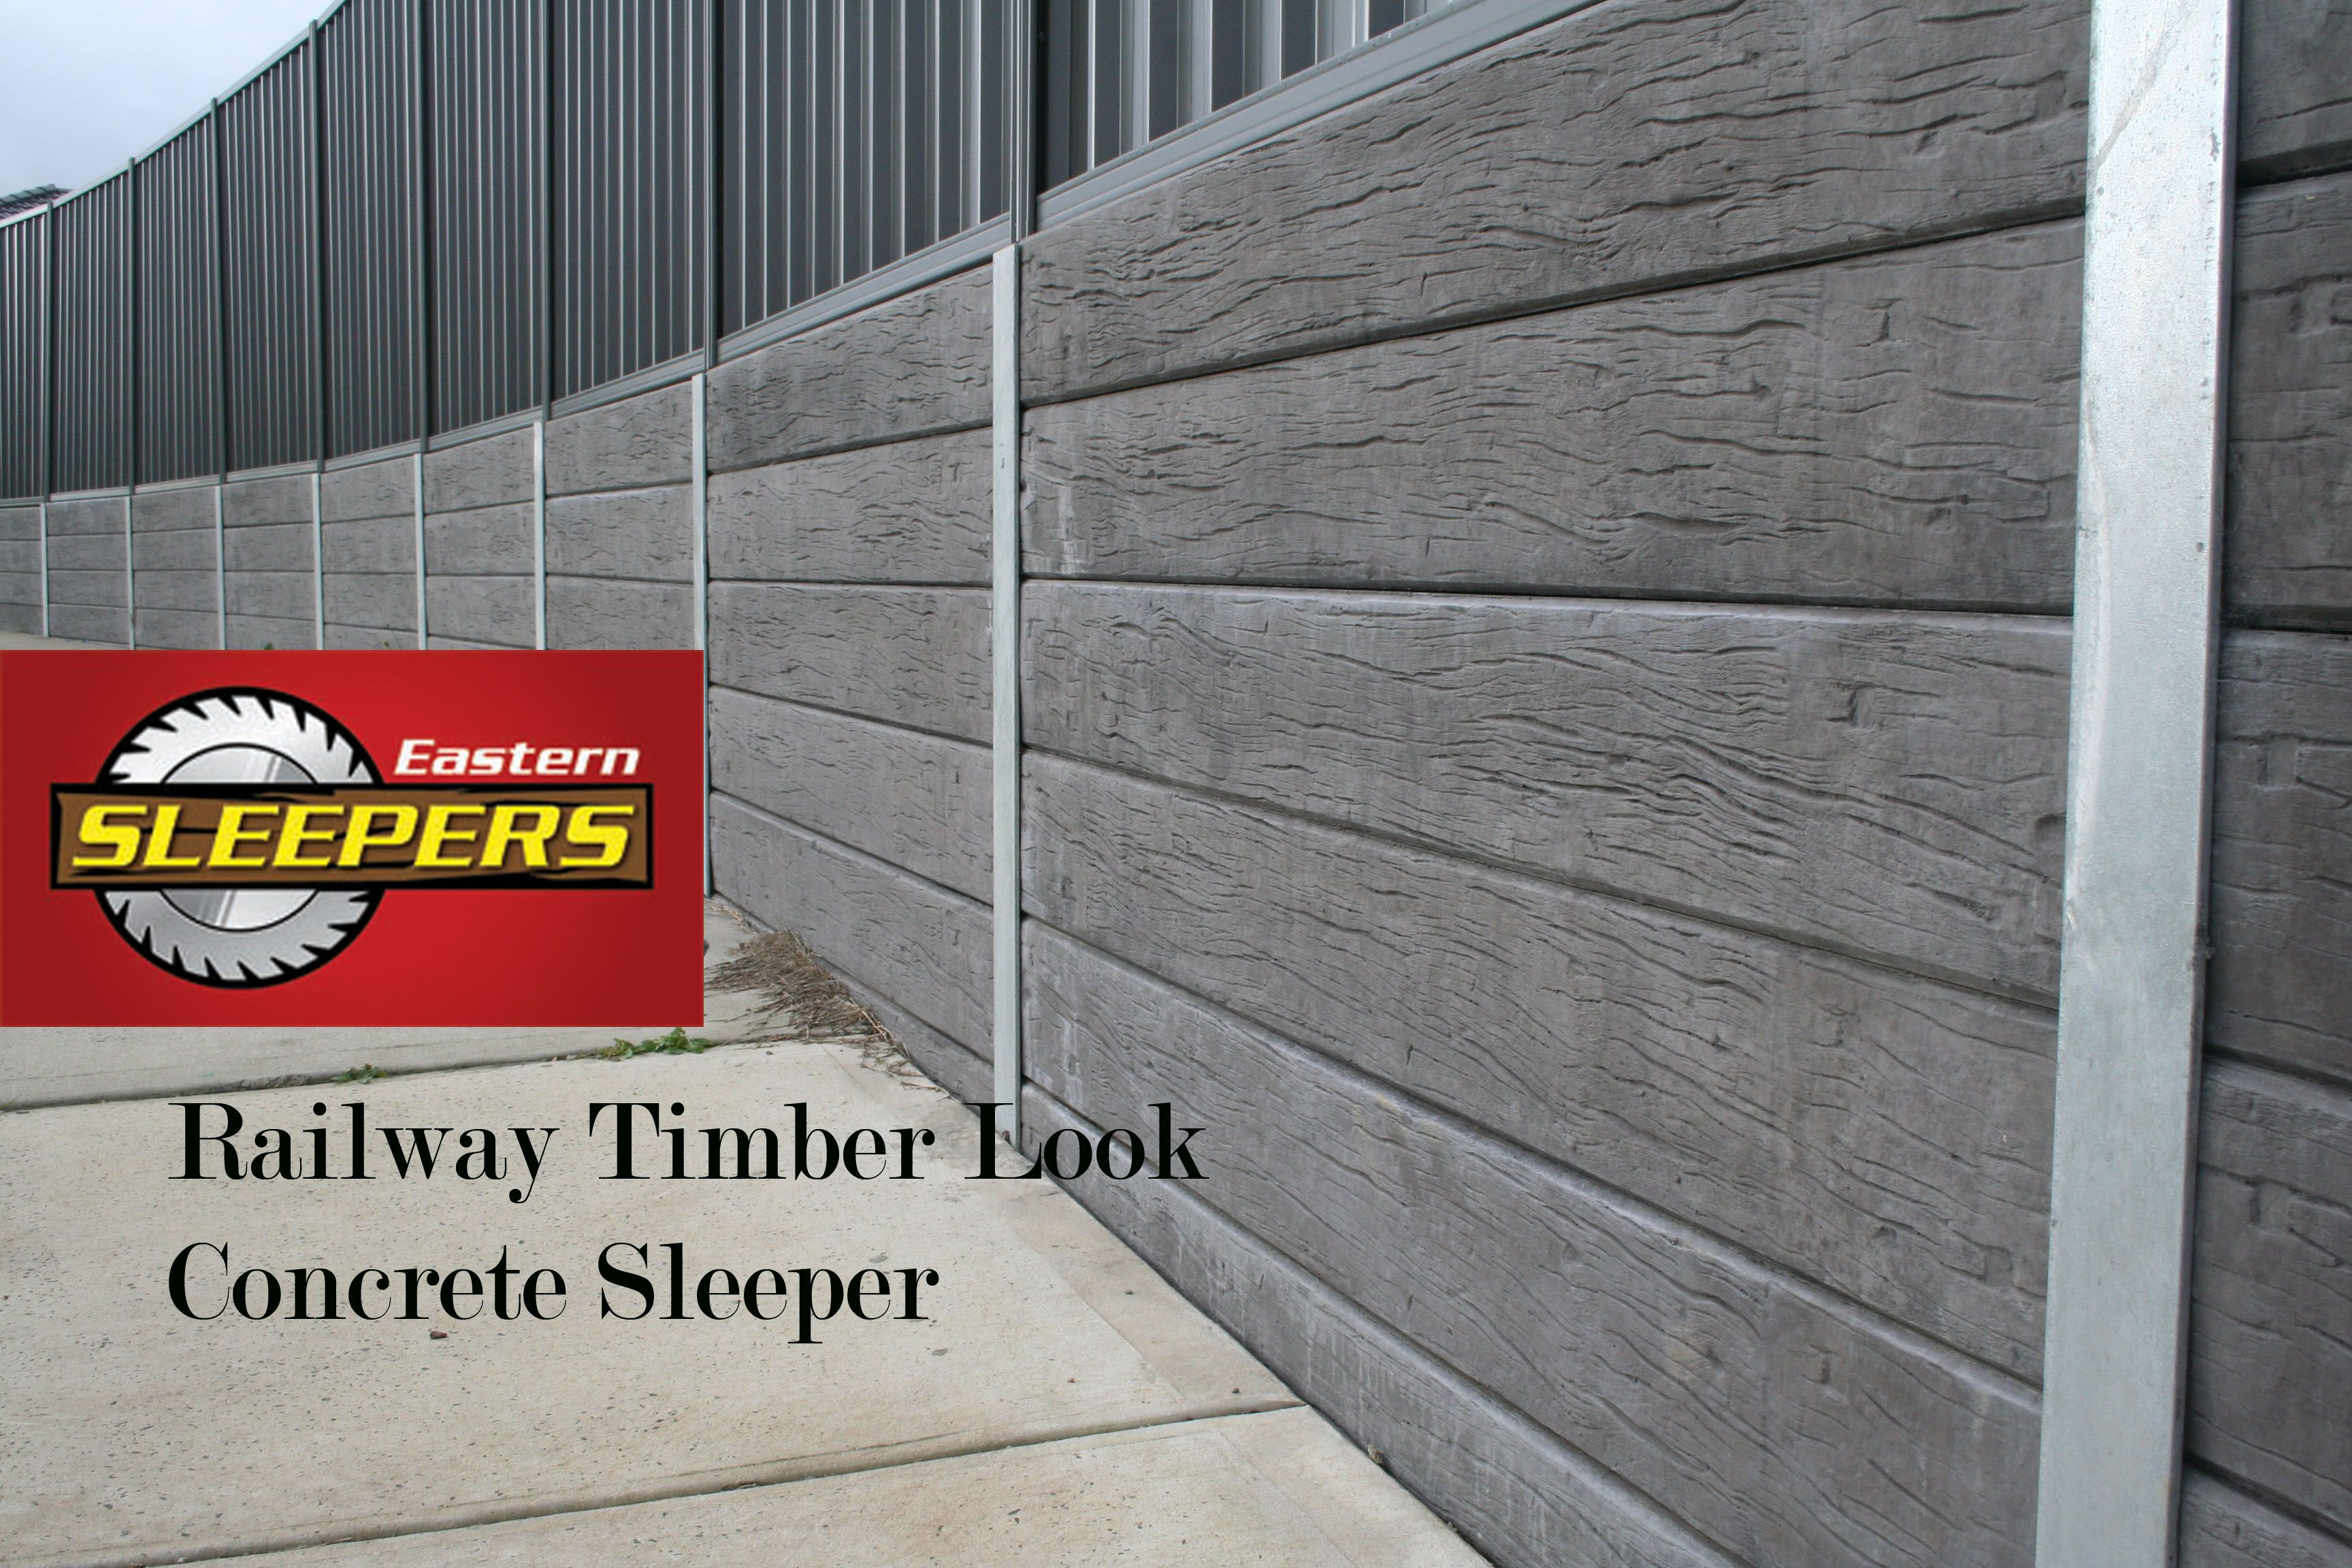 Pin On Concrete Sleepers Retaining Walls Sleepers Landscaping Garden Design